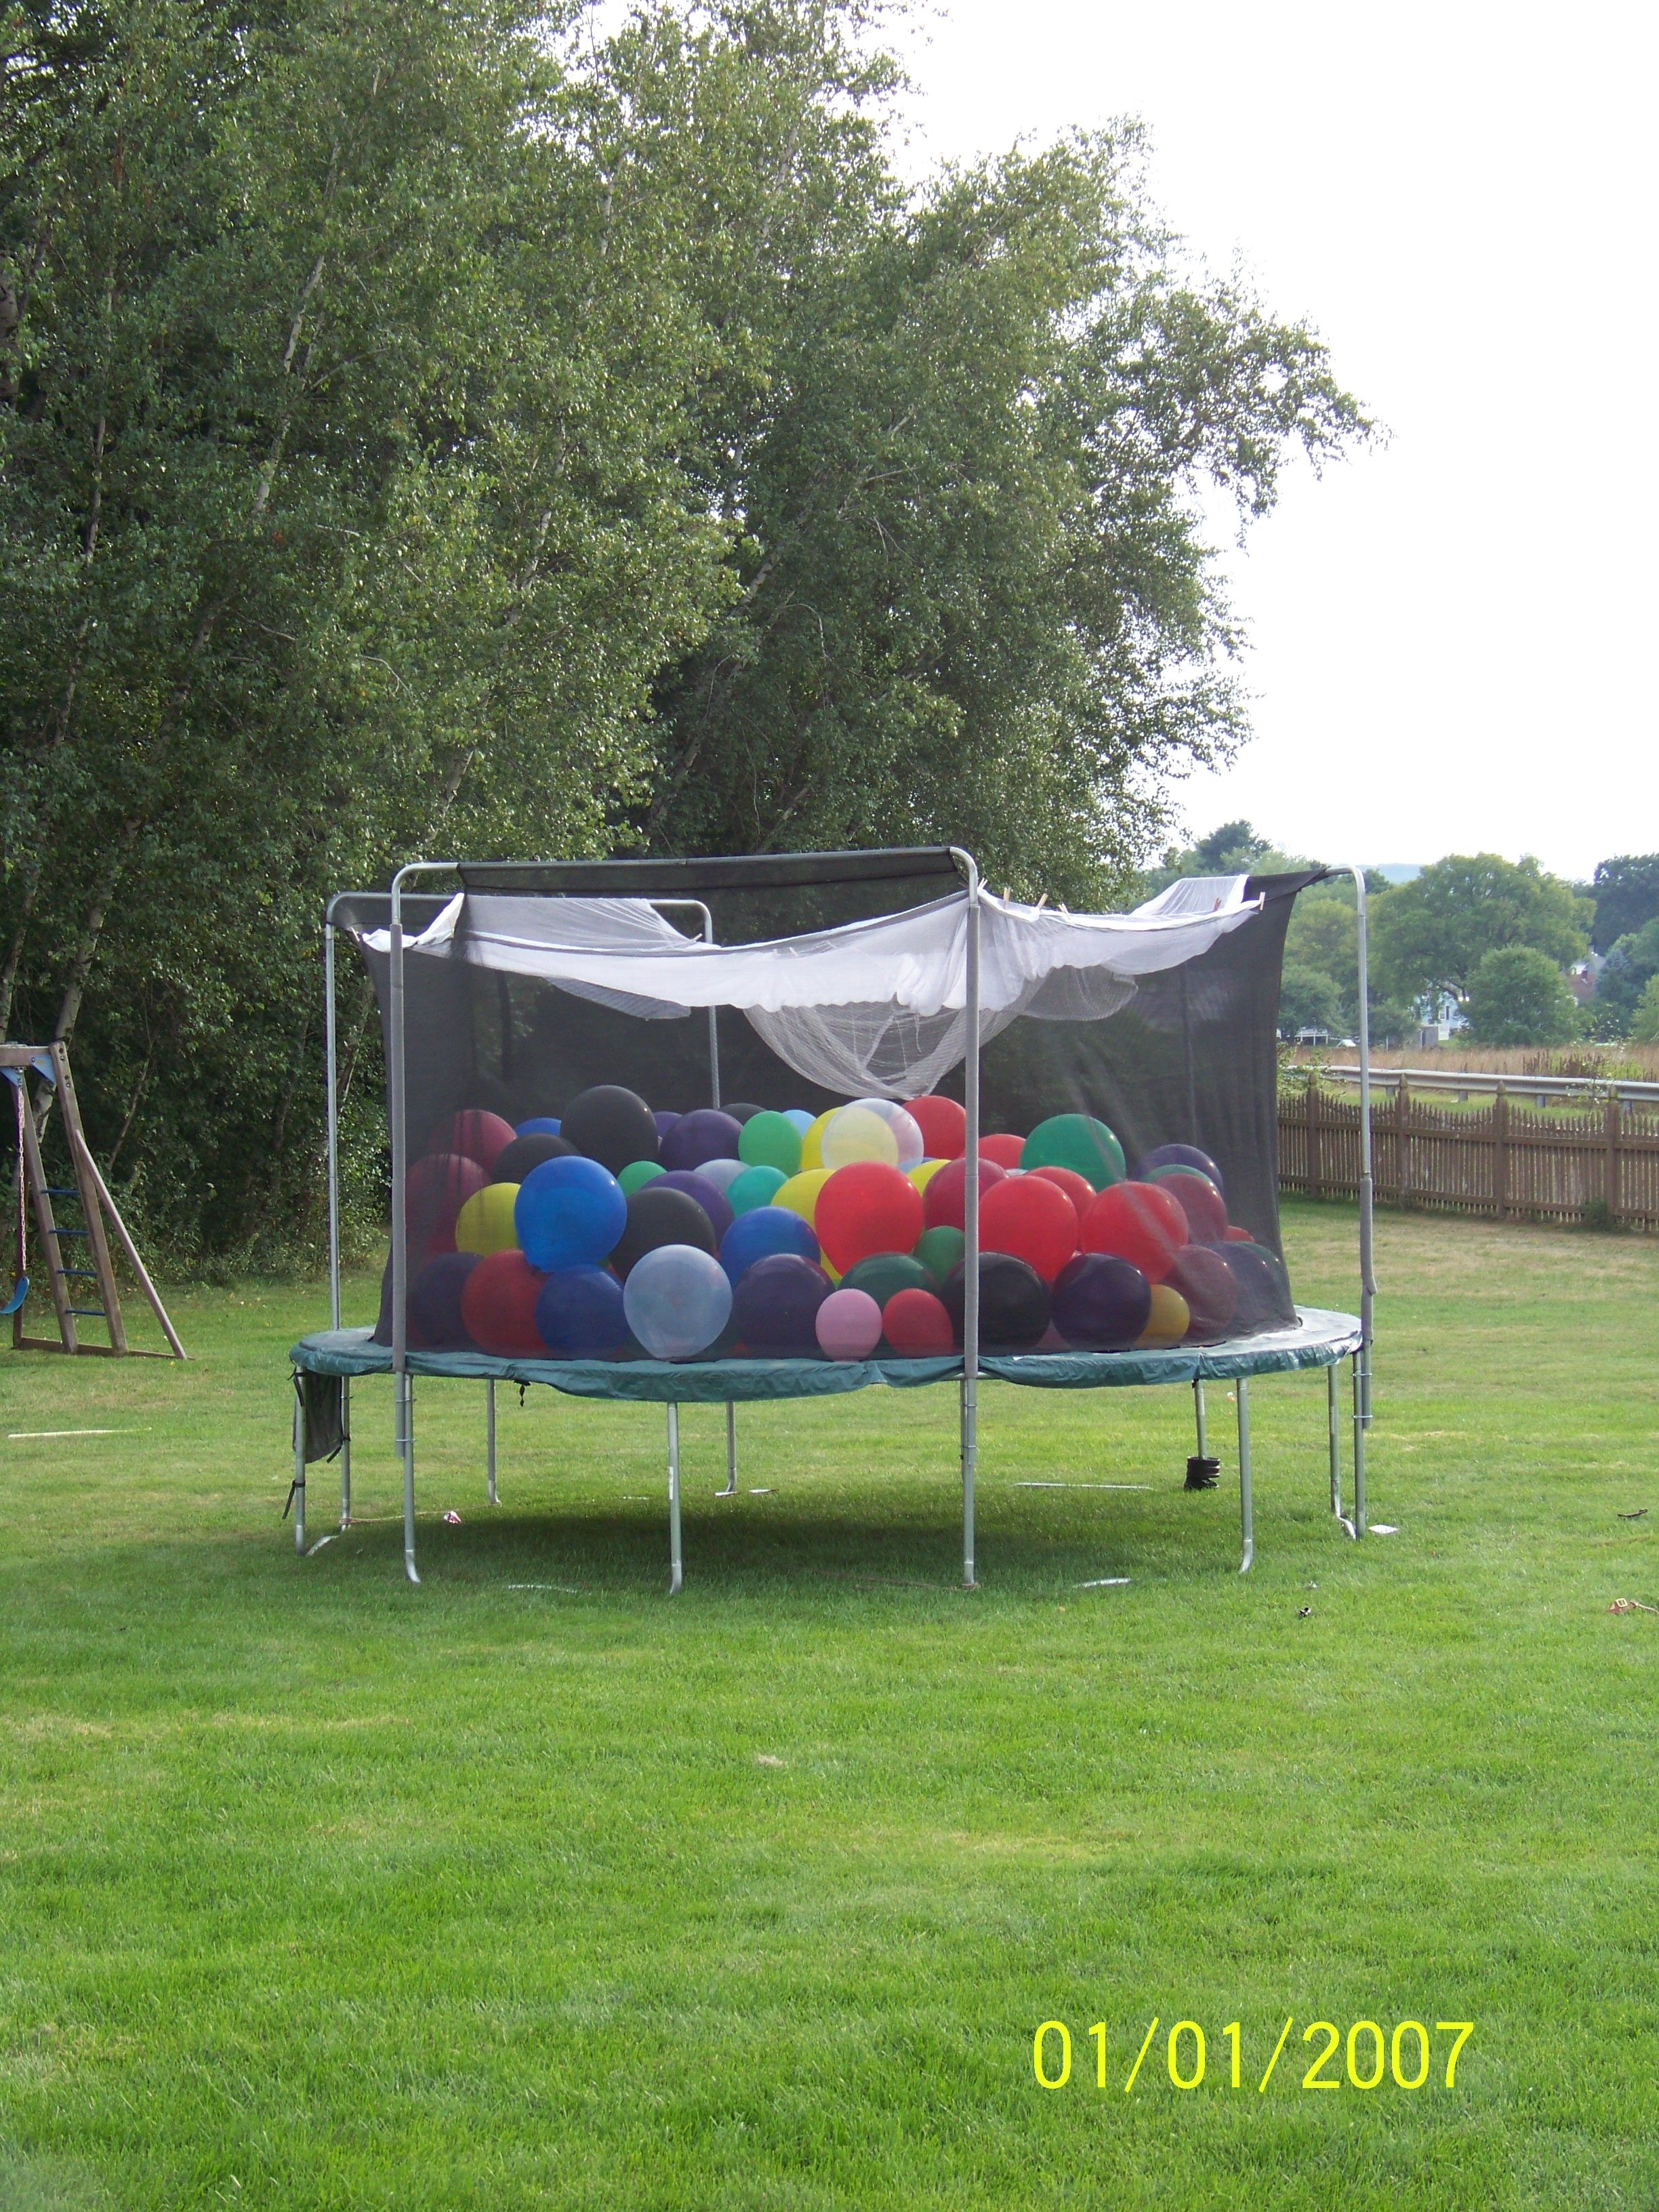 Pin By Nicole Salvie On Party Trampoline Backyard Fun Trampoline Party